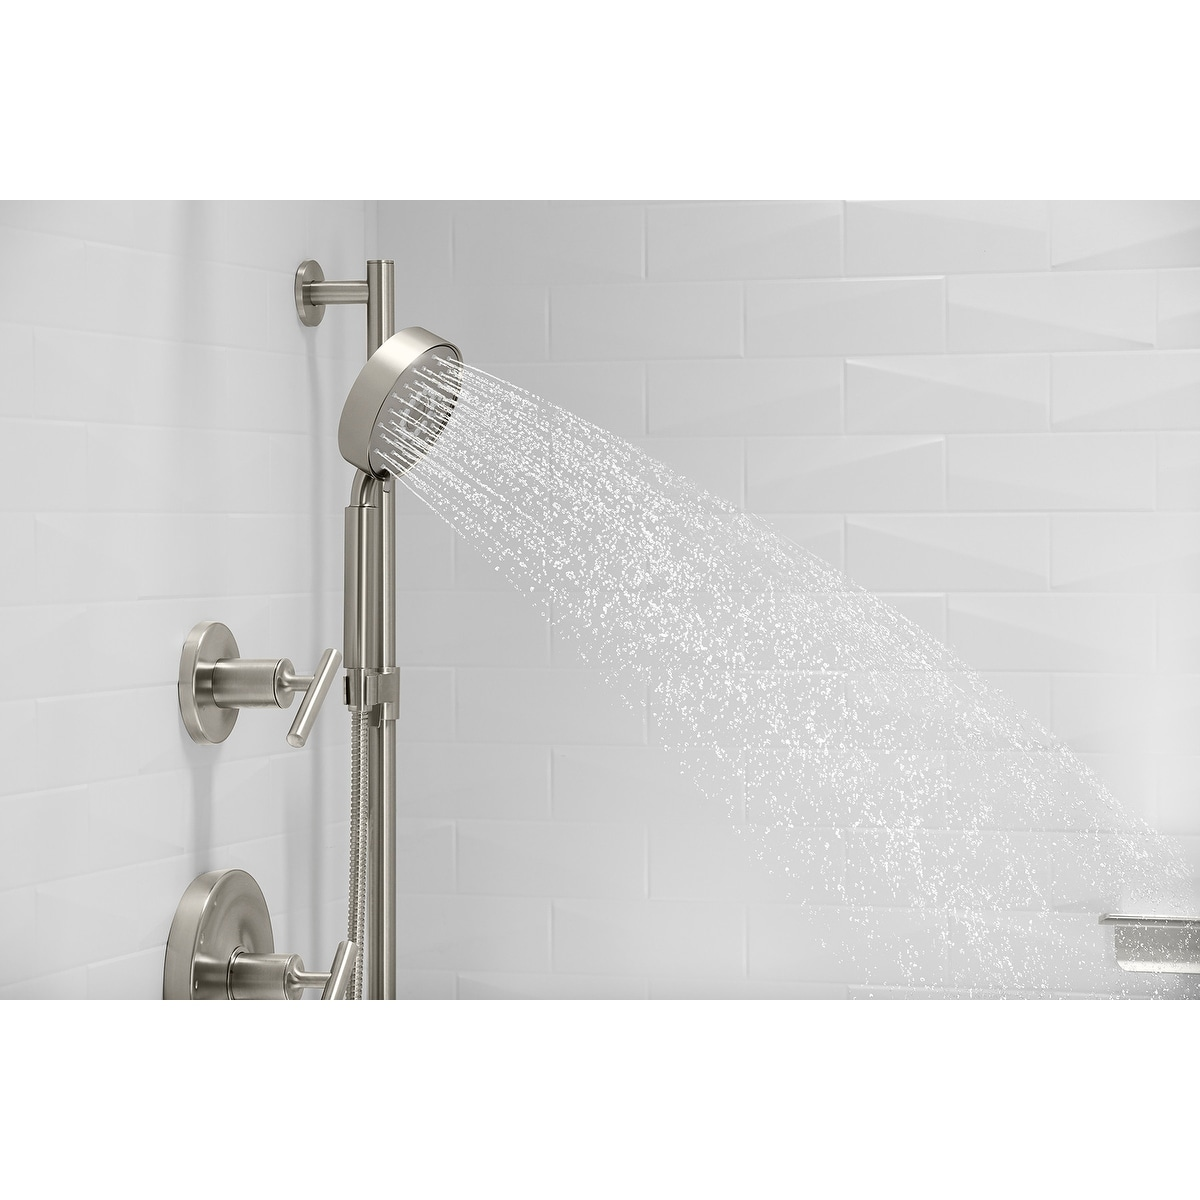 Kohler K 22178 G Purist 1 75 Gpm Multi Function Hand Shower